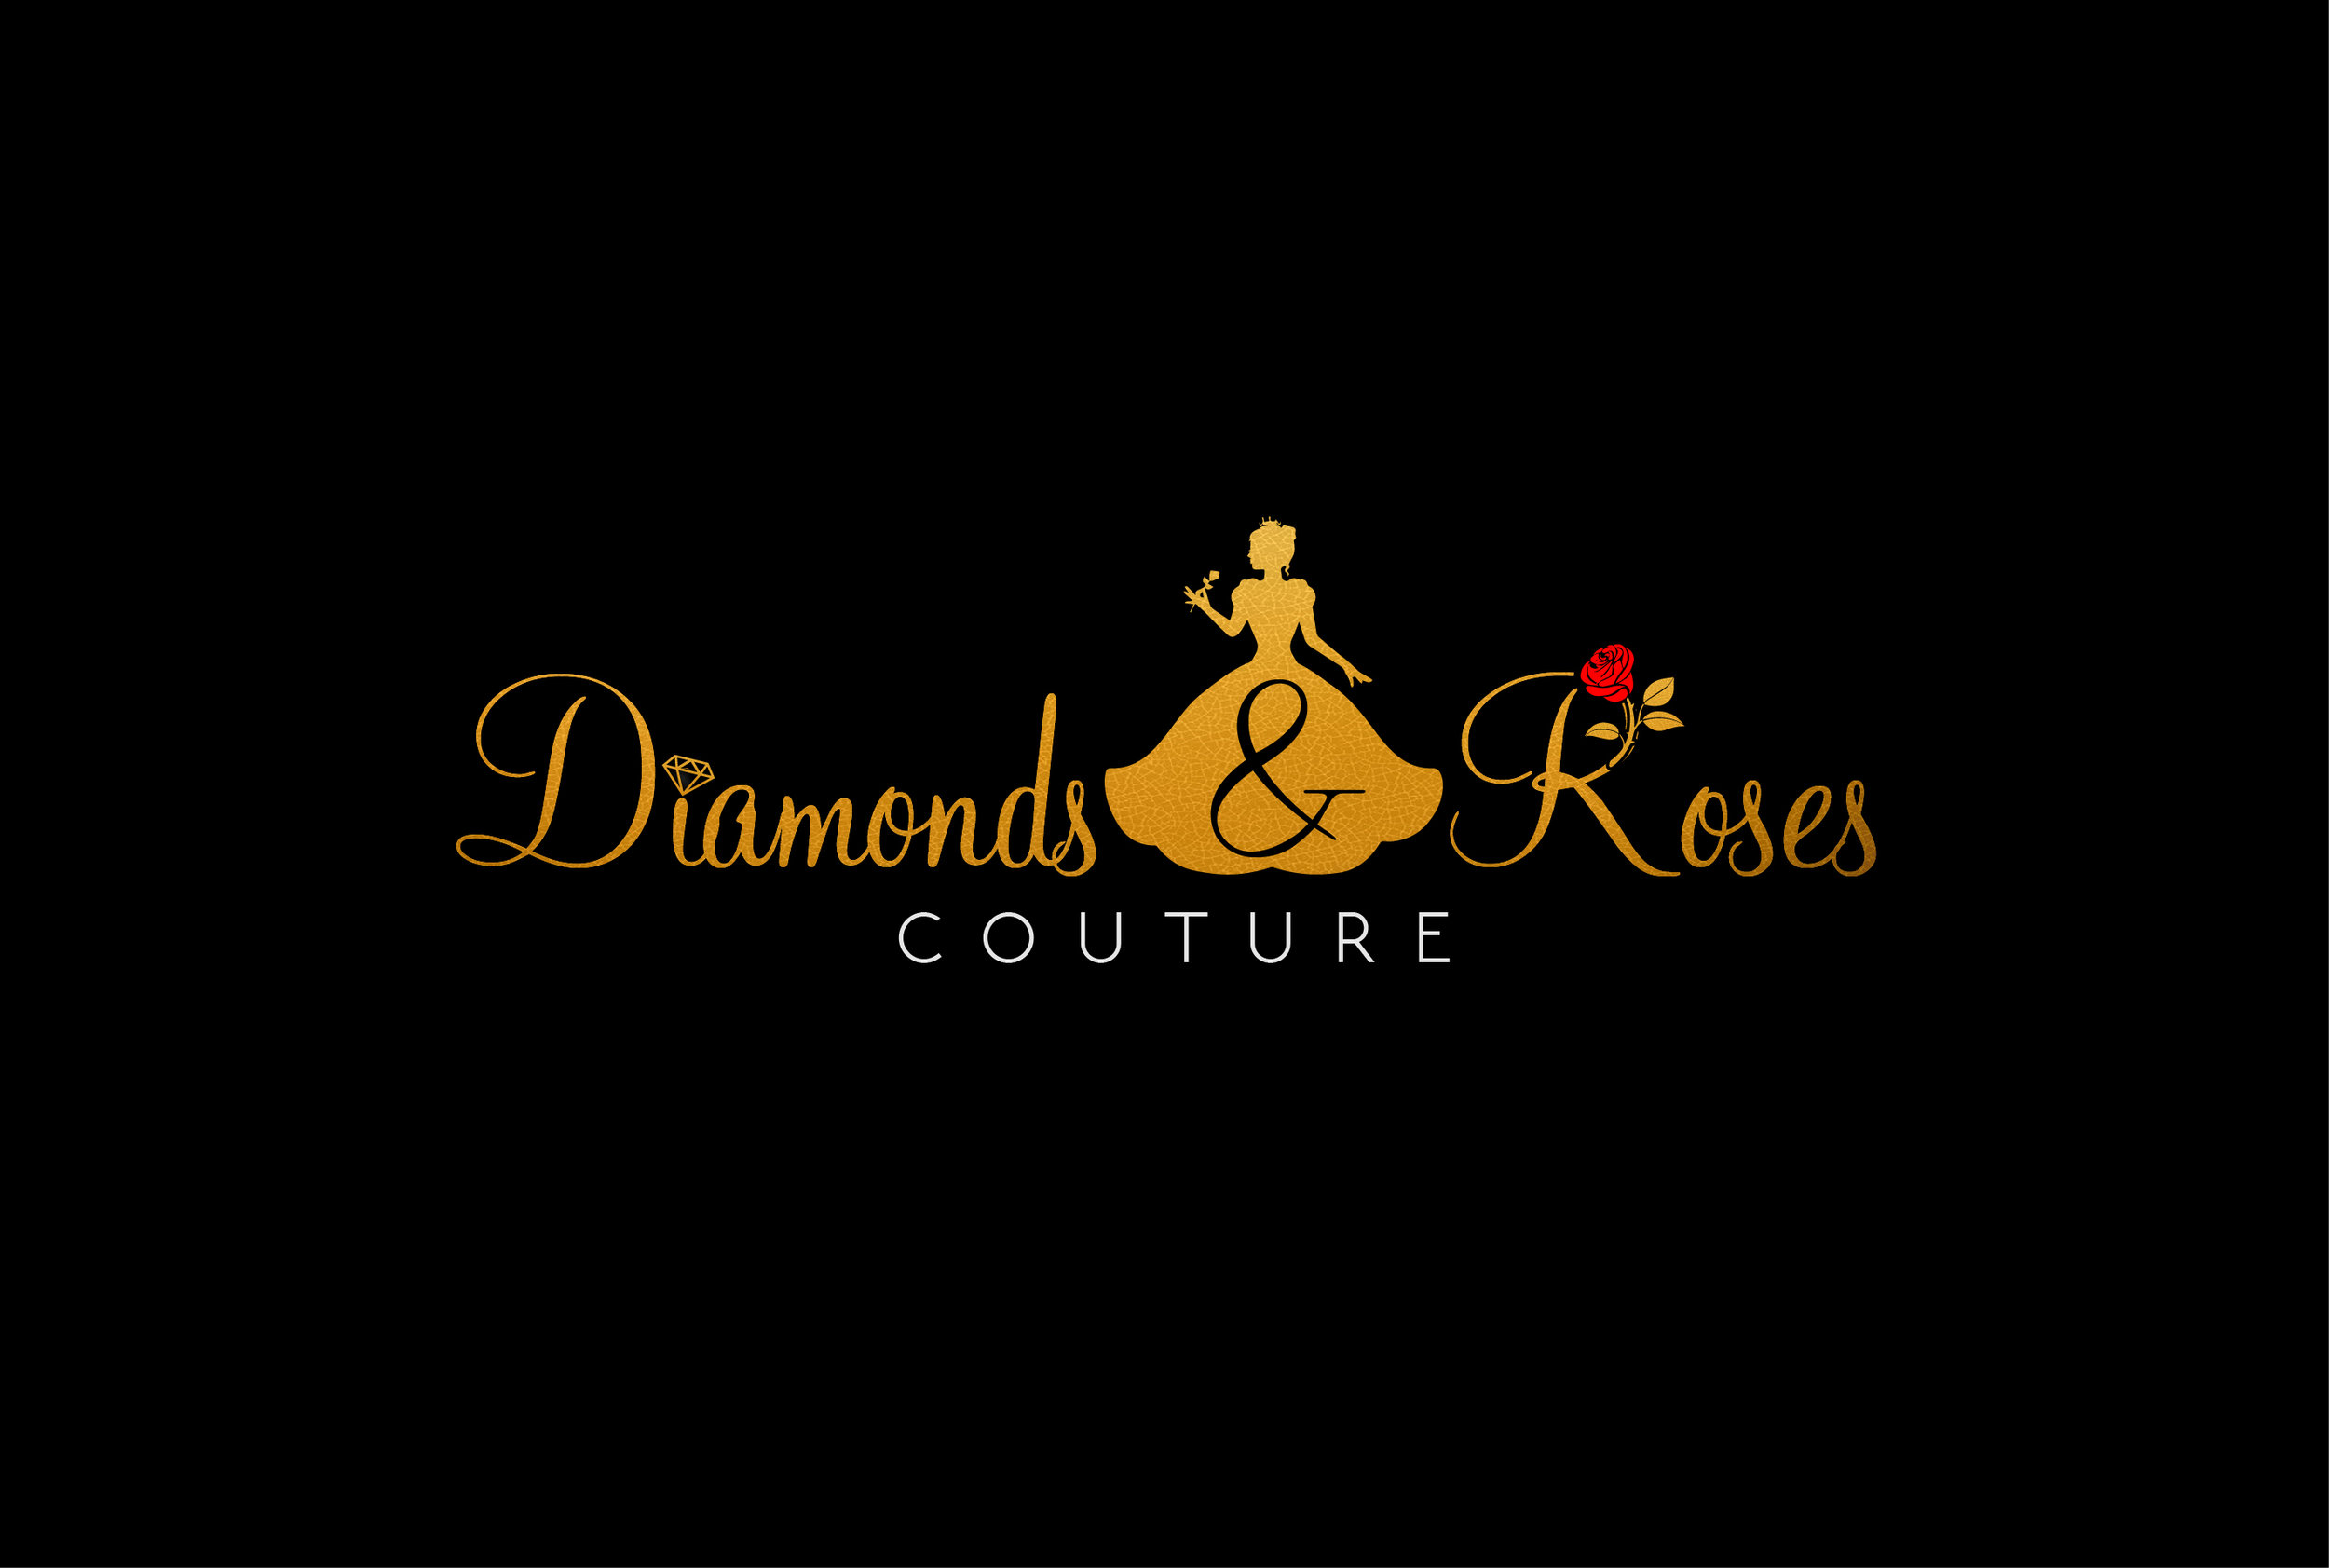 Diamonds & Roses Couture